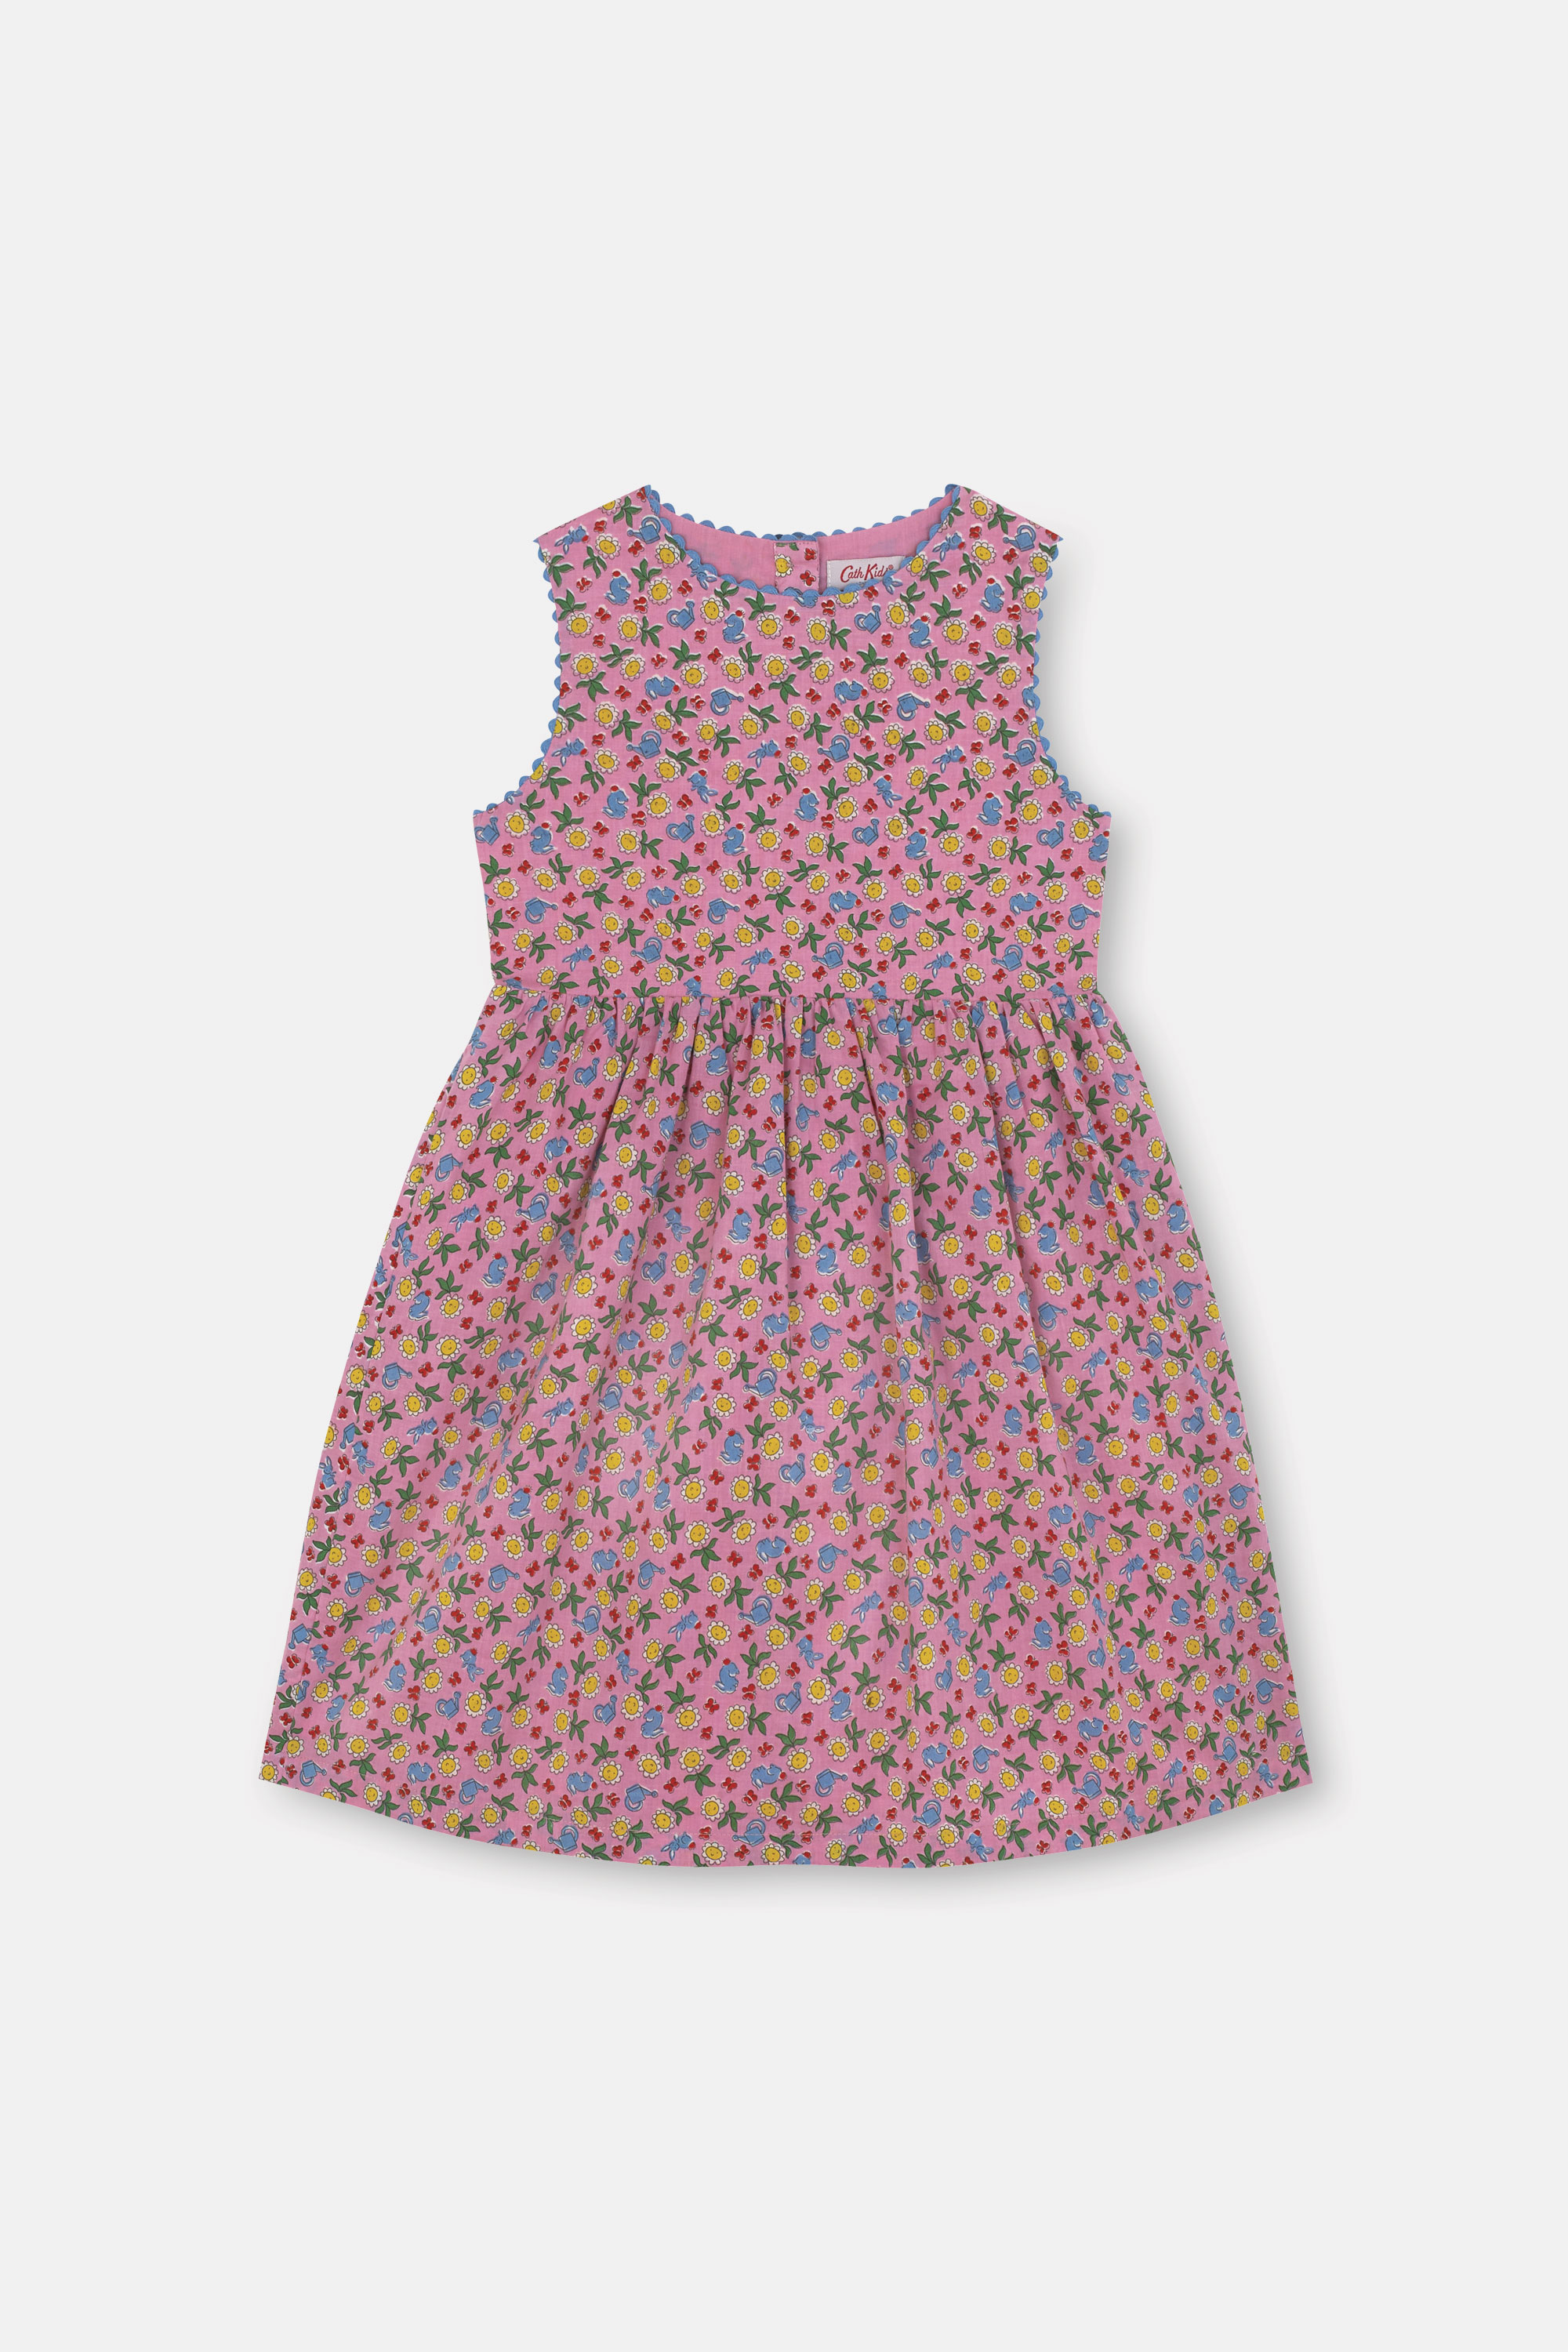 Cath Kidston Petal Flowers Ditsy Charlotte Dress in Mid Pink, 2-3 yr